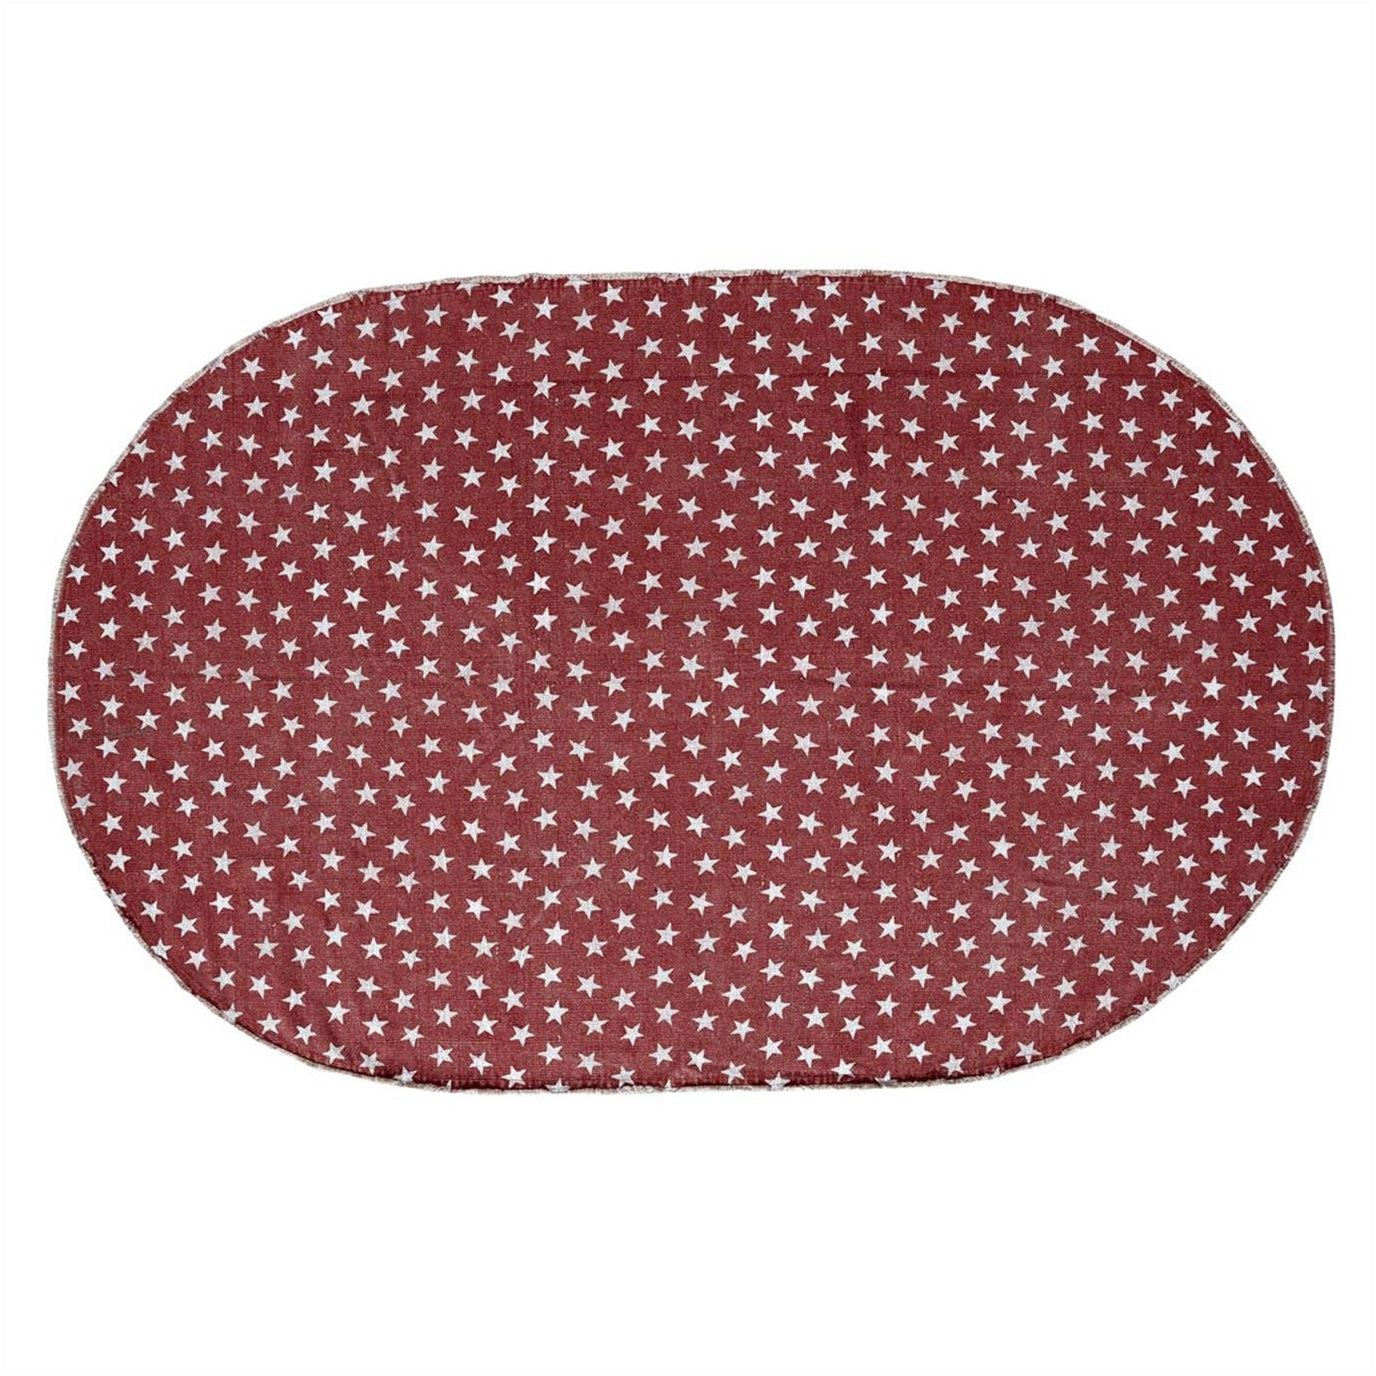 Multi Star Red Cotton Rug Oval 60x96